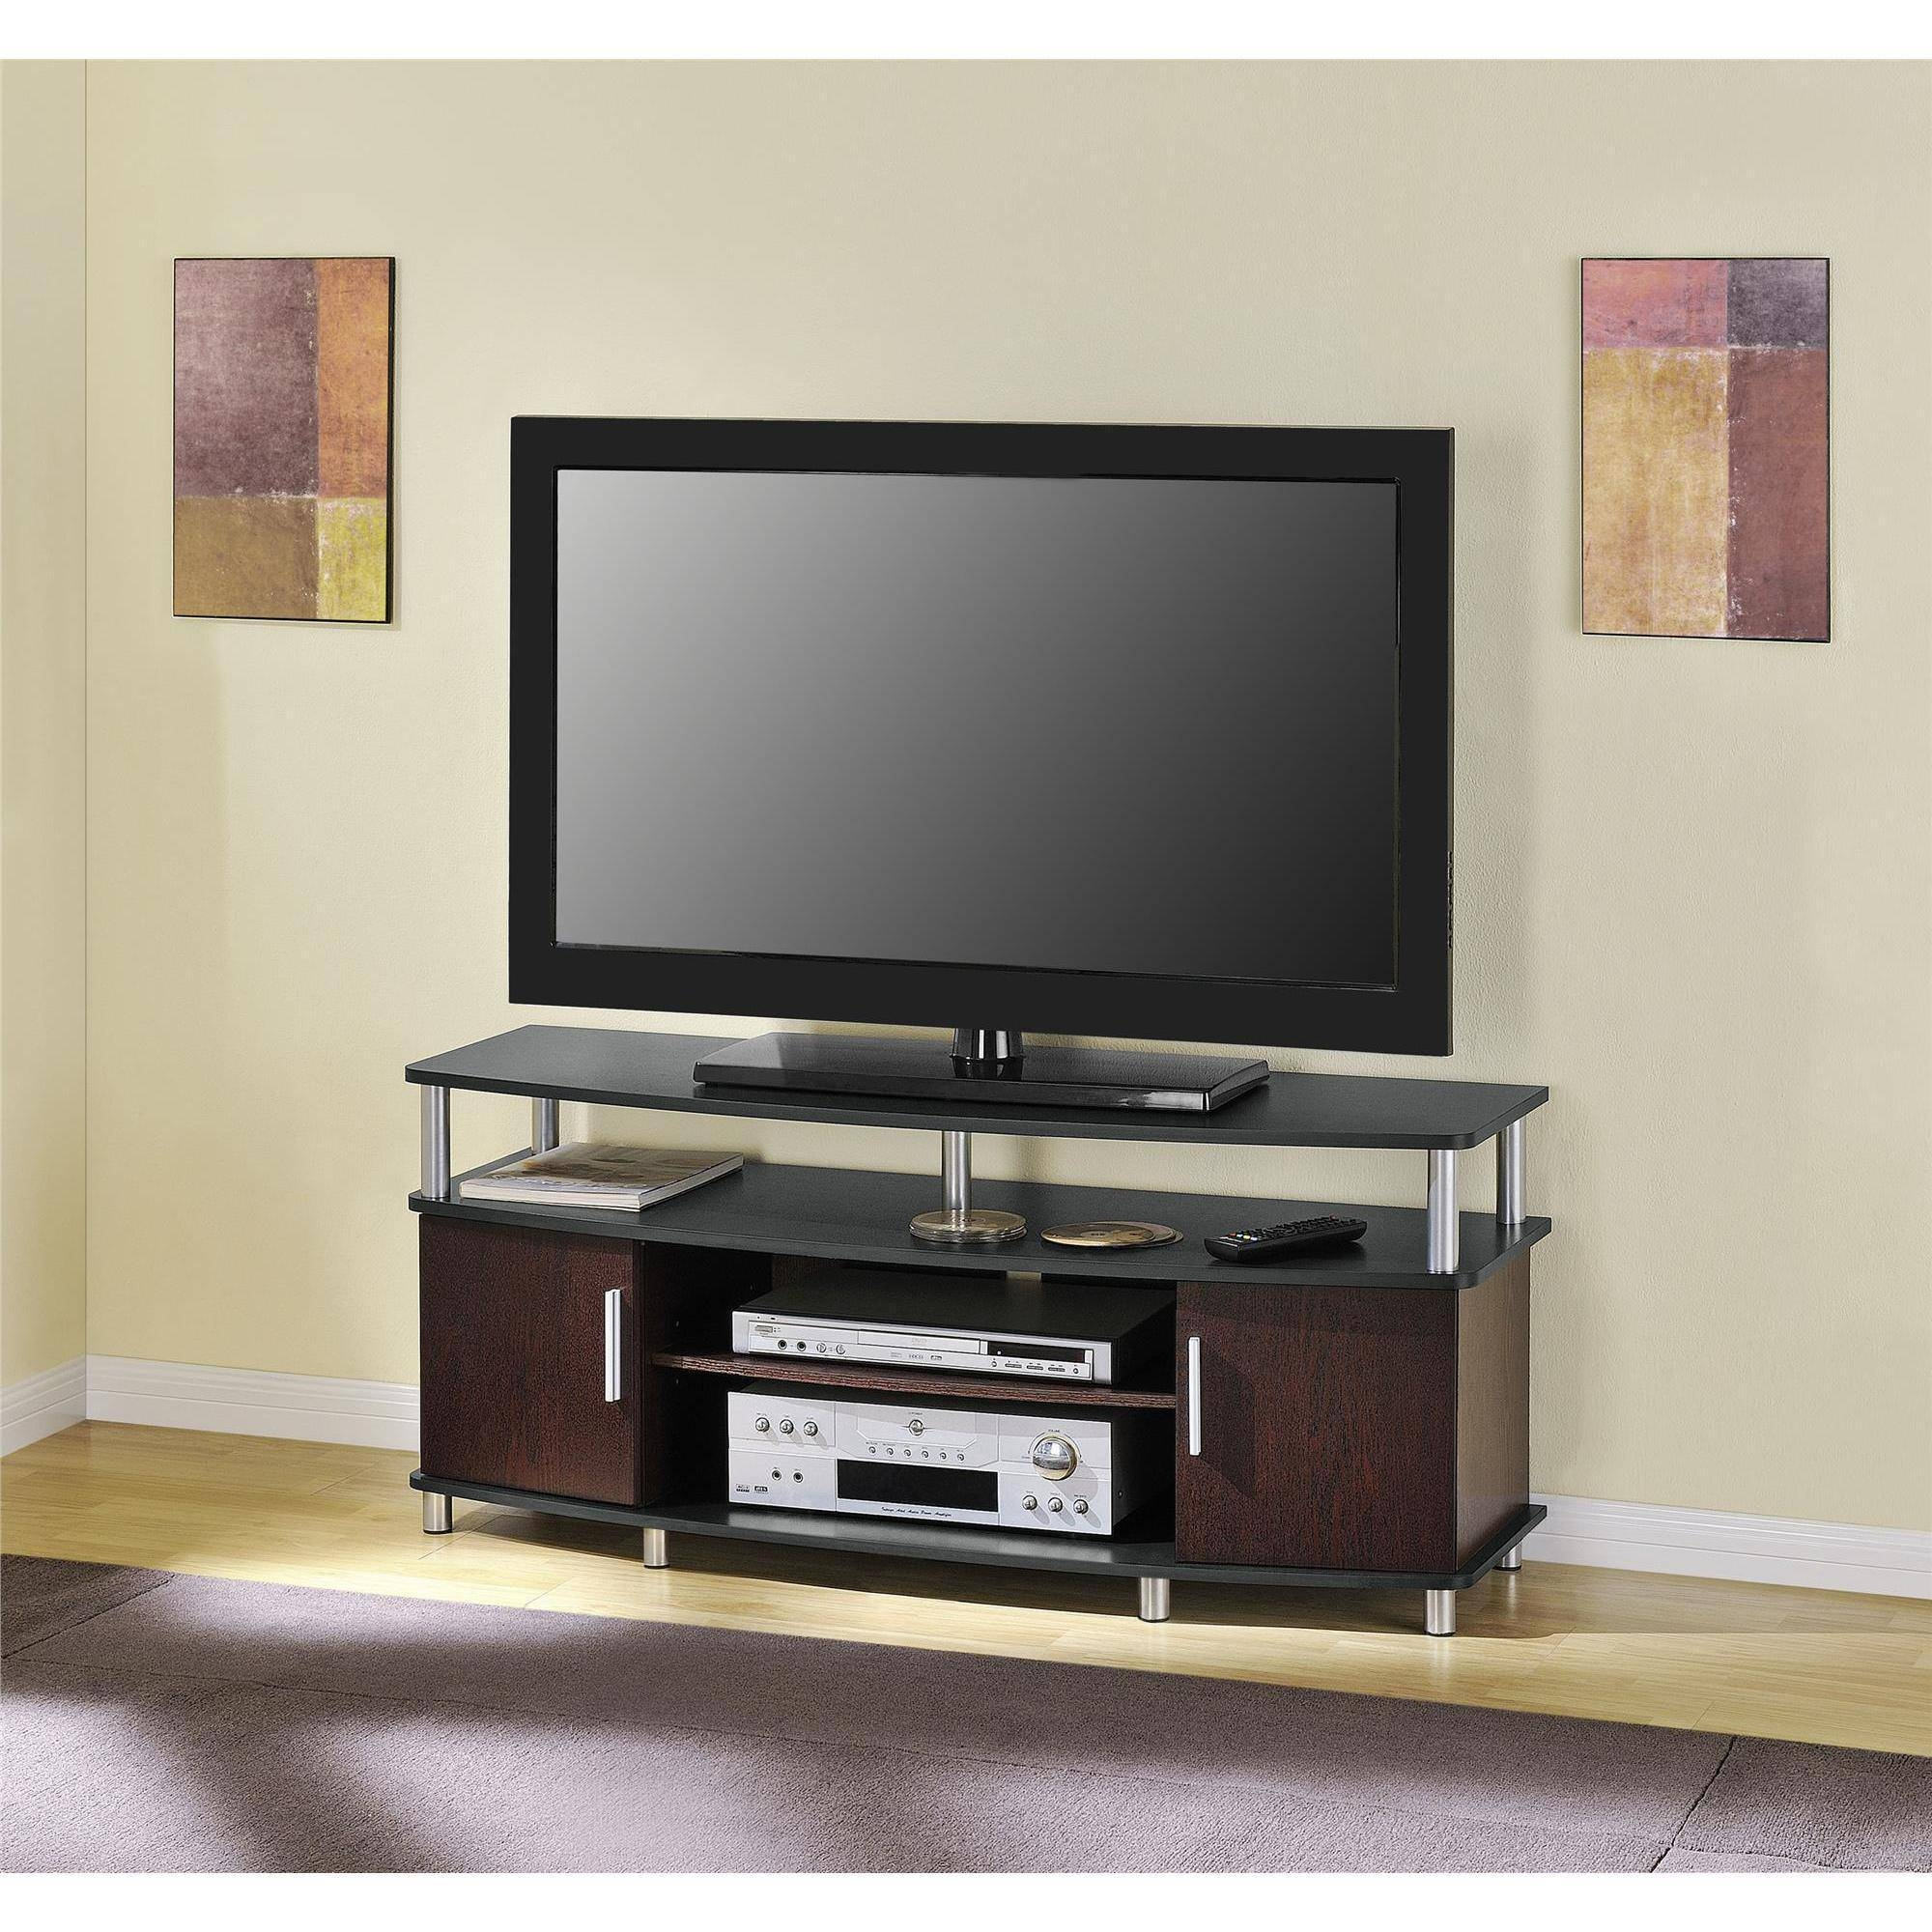 Carson Tv Stand For Tvs Up To 50 Multiple Finishes Walmart With Tv Bookcase Combination (#4 of 15)